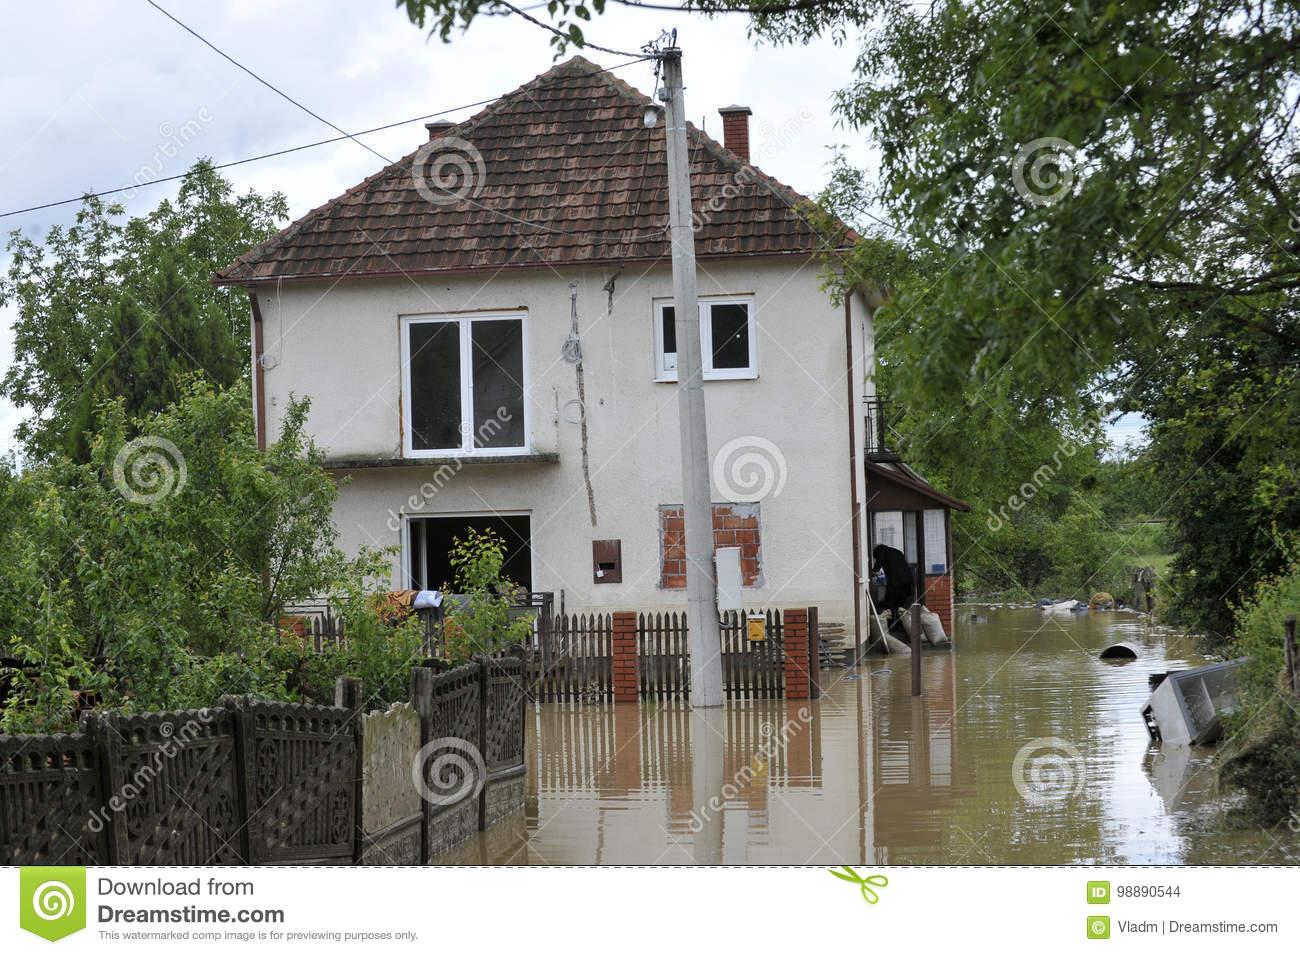 The consequences of flooding, flooded house.